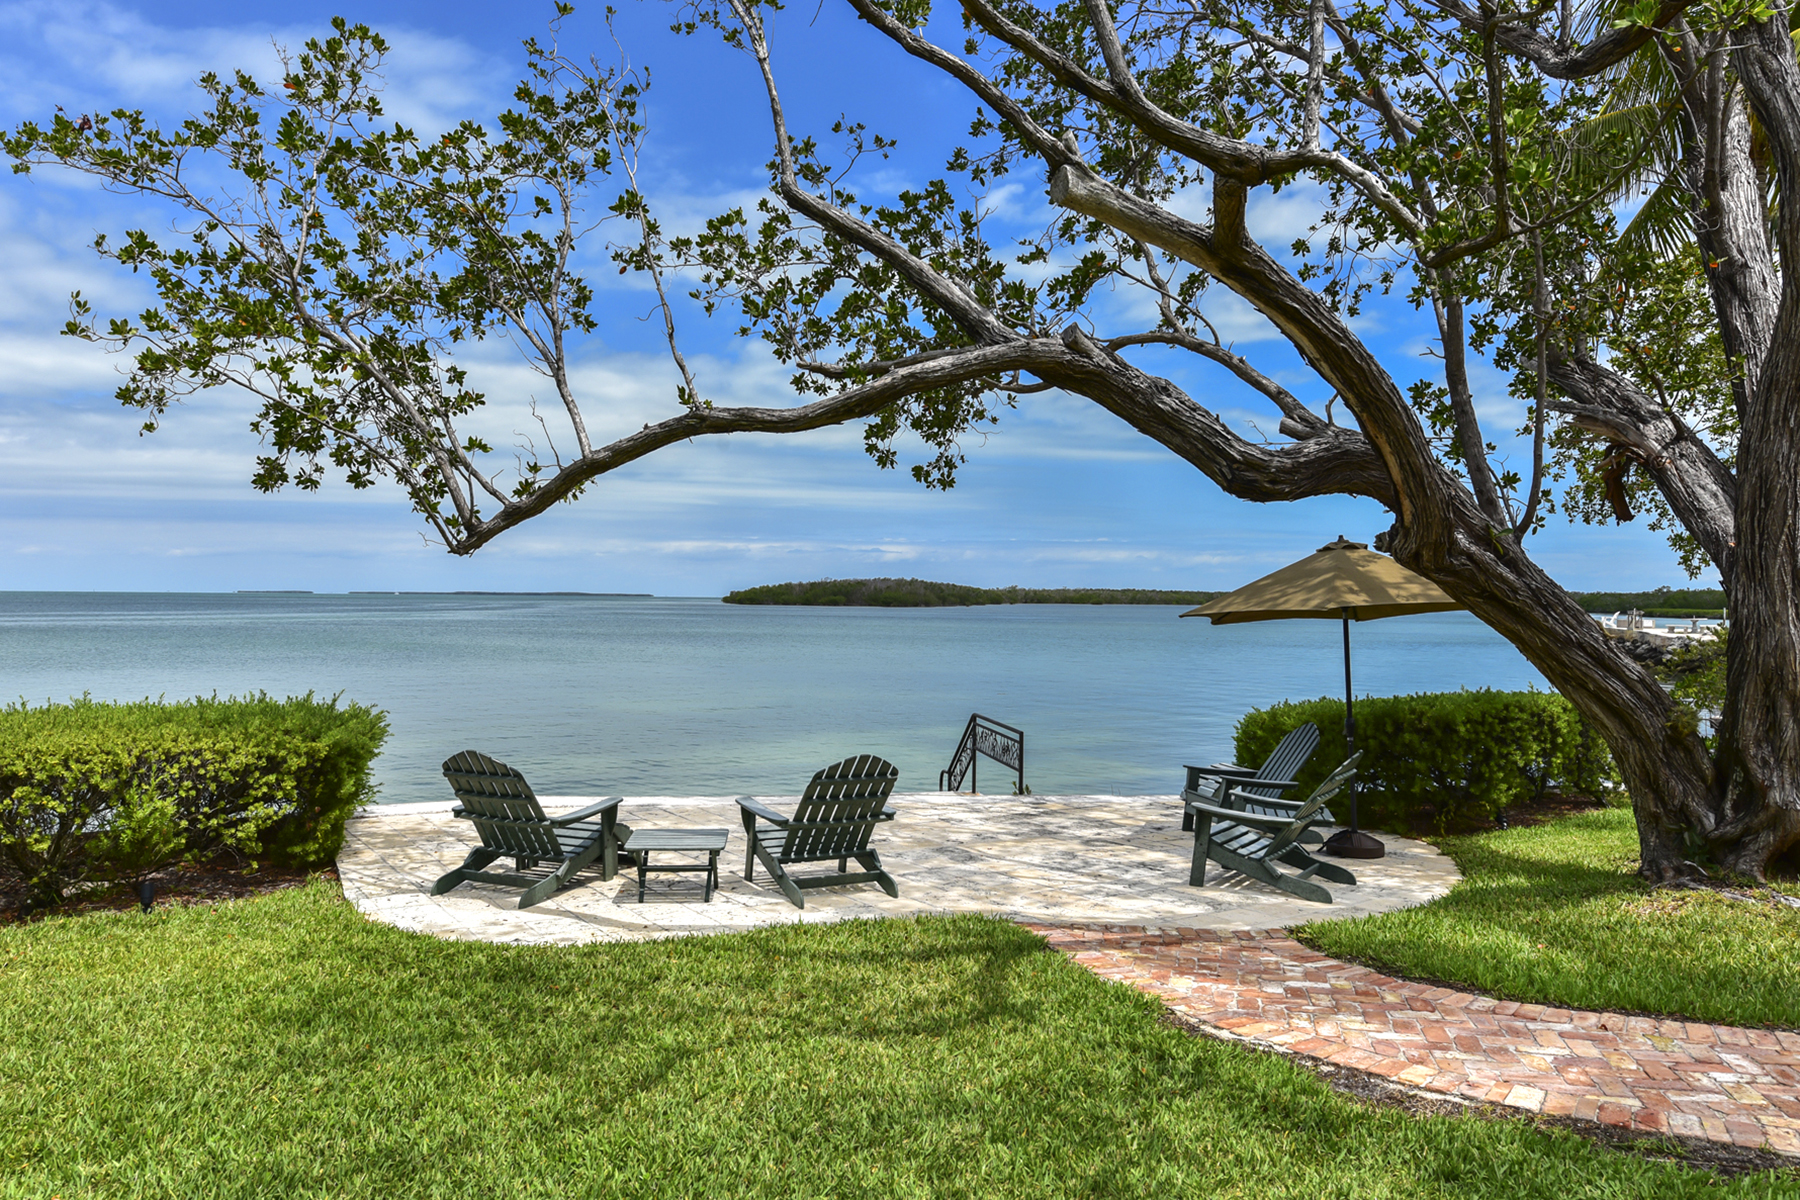 Single Family Homes for Active at 82994 Overseas Highway, #23, Islamorada, FL 82994 Overseas Highway 23 Islamorada, Florida 33036 United States